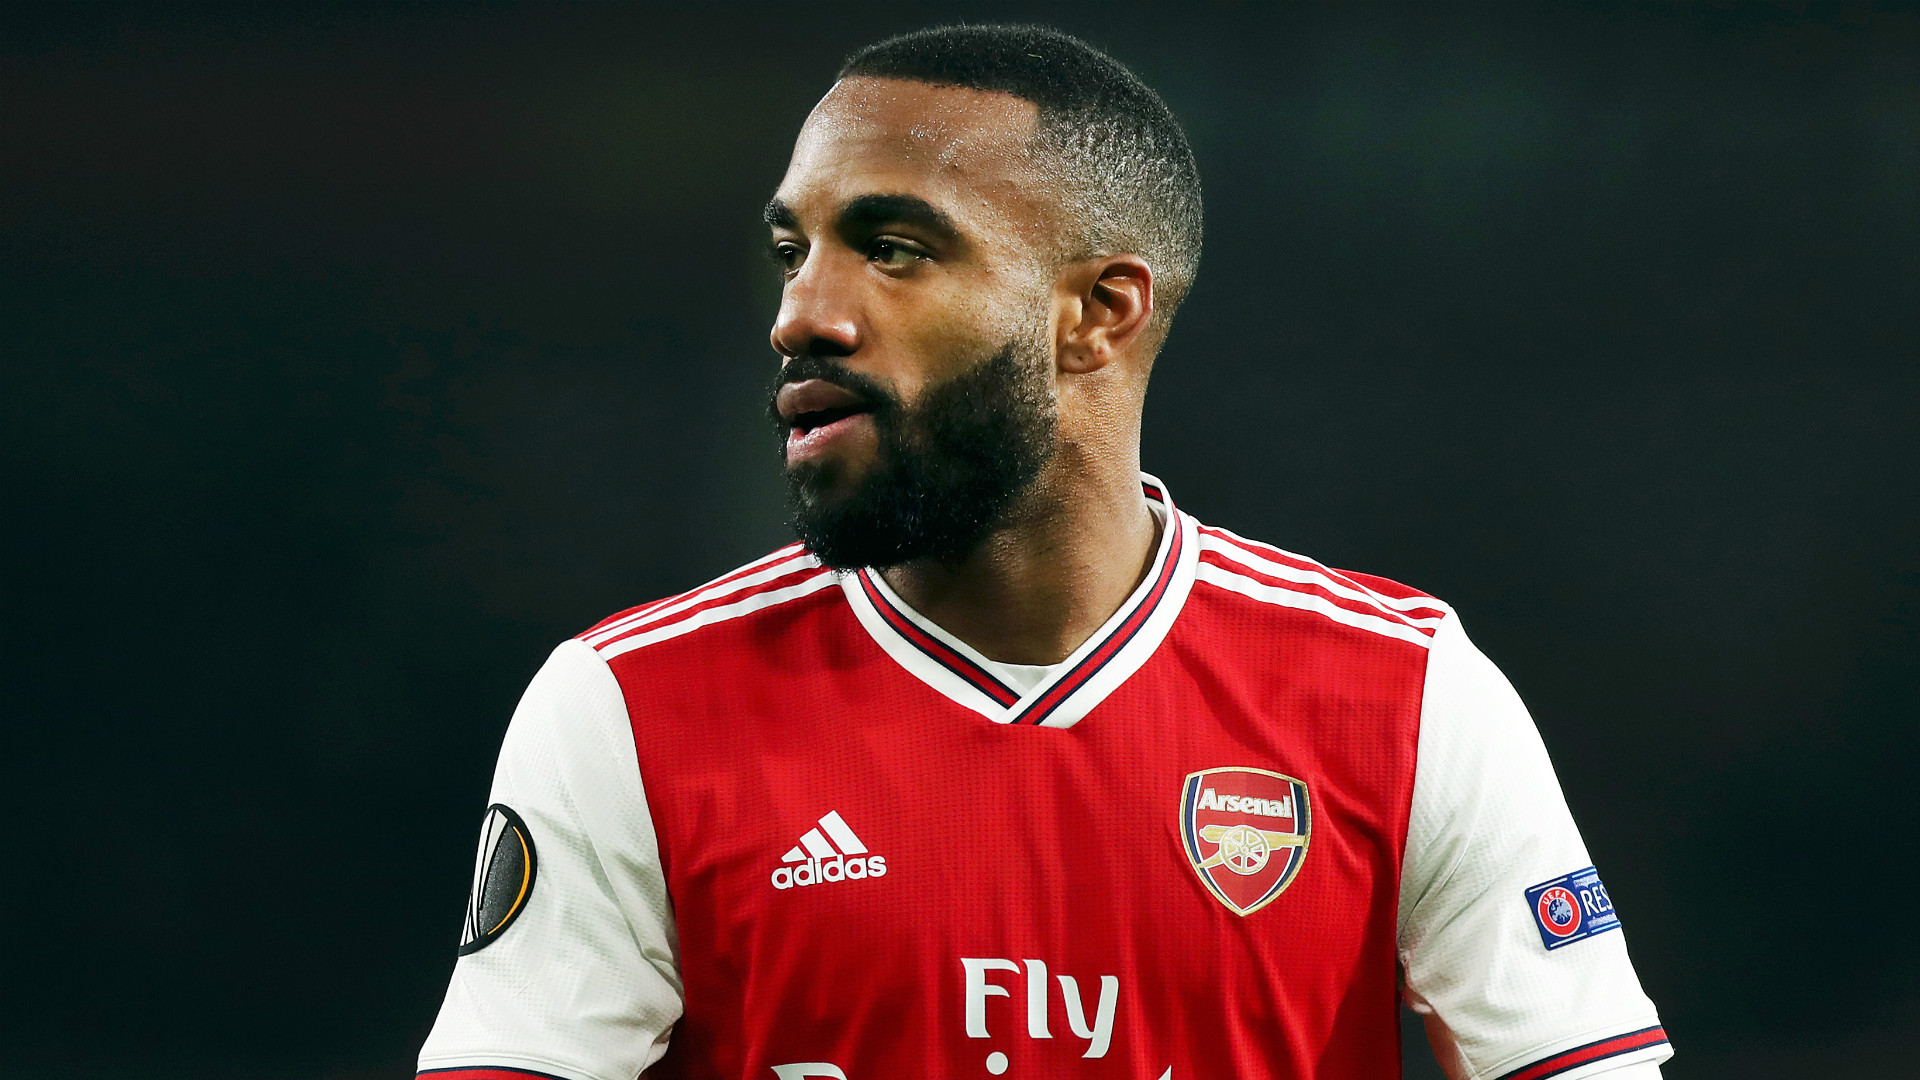 Transfer news and rumours LIVE: Juve, Inter chase Arsenal's Lacazette